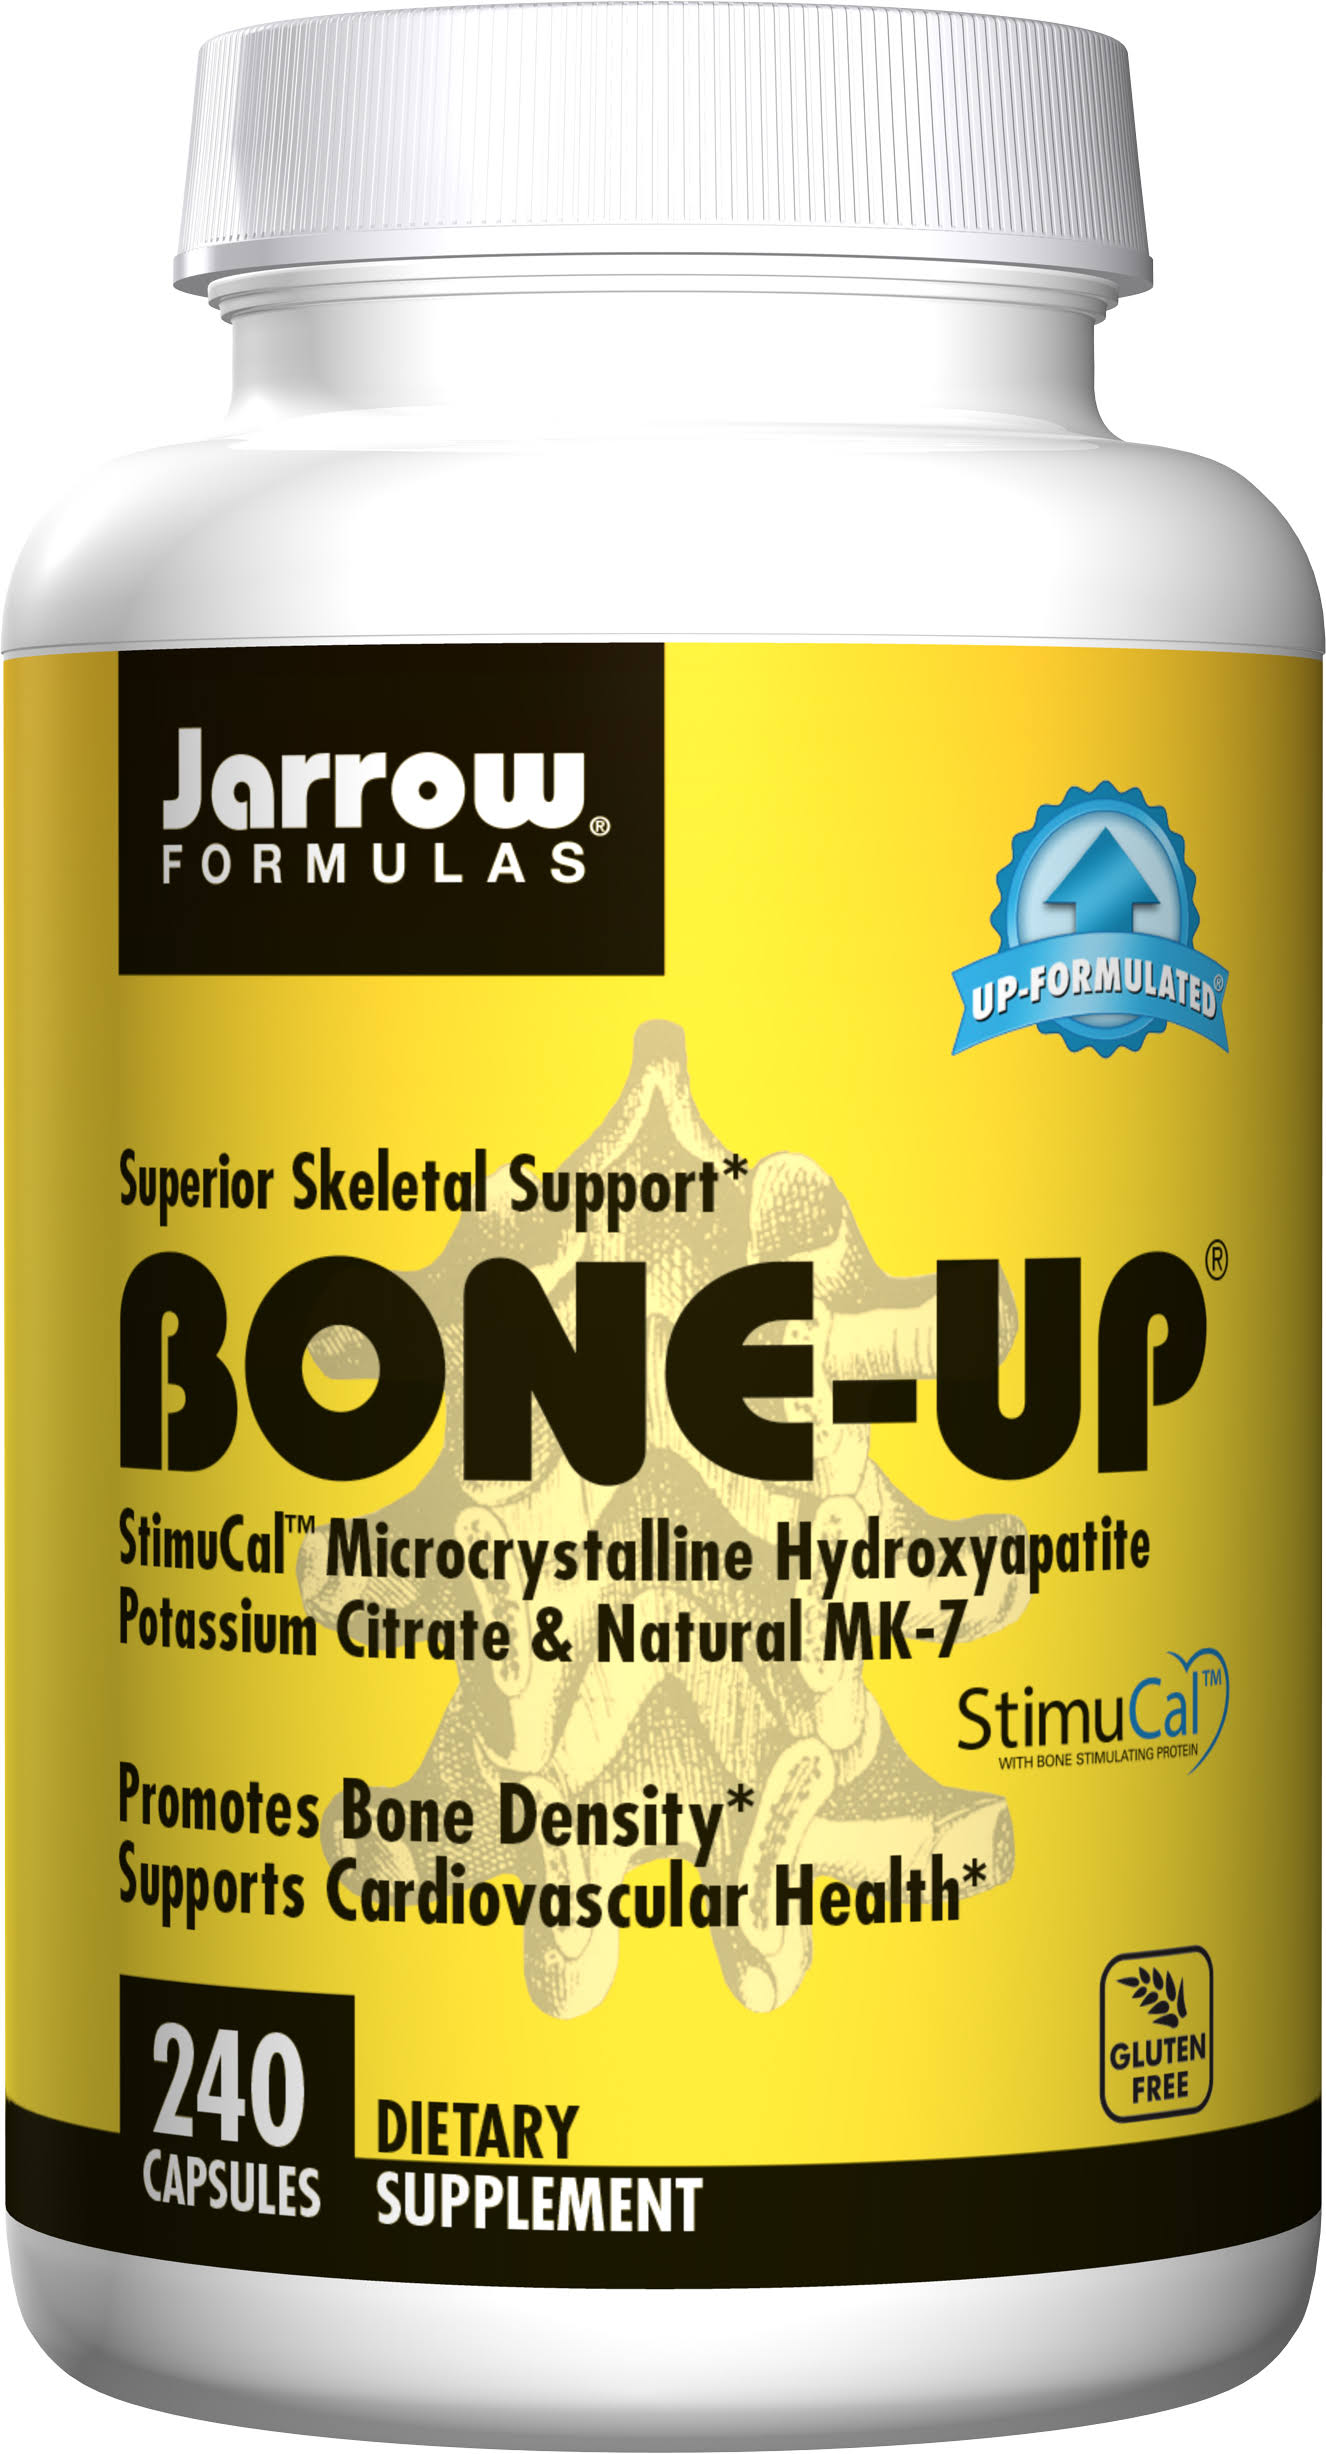 Jarrow Formulas Bone-Up Supplement - 240 Capsules